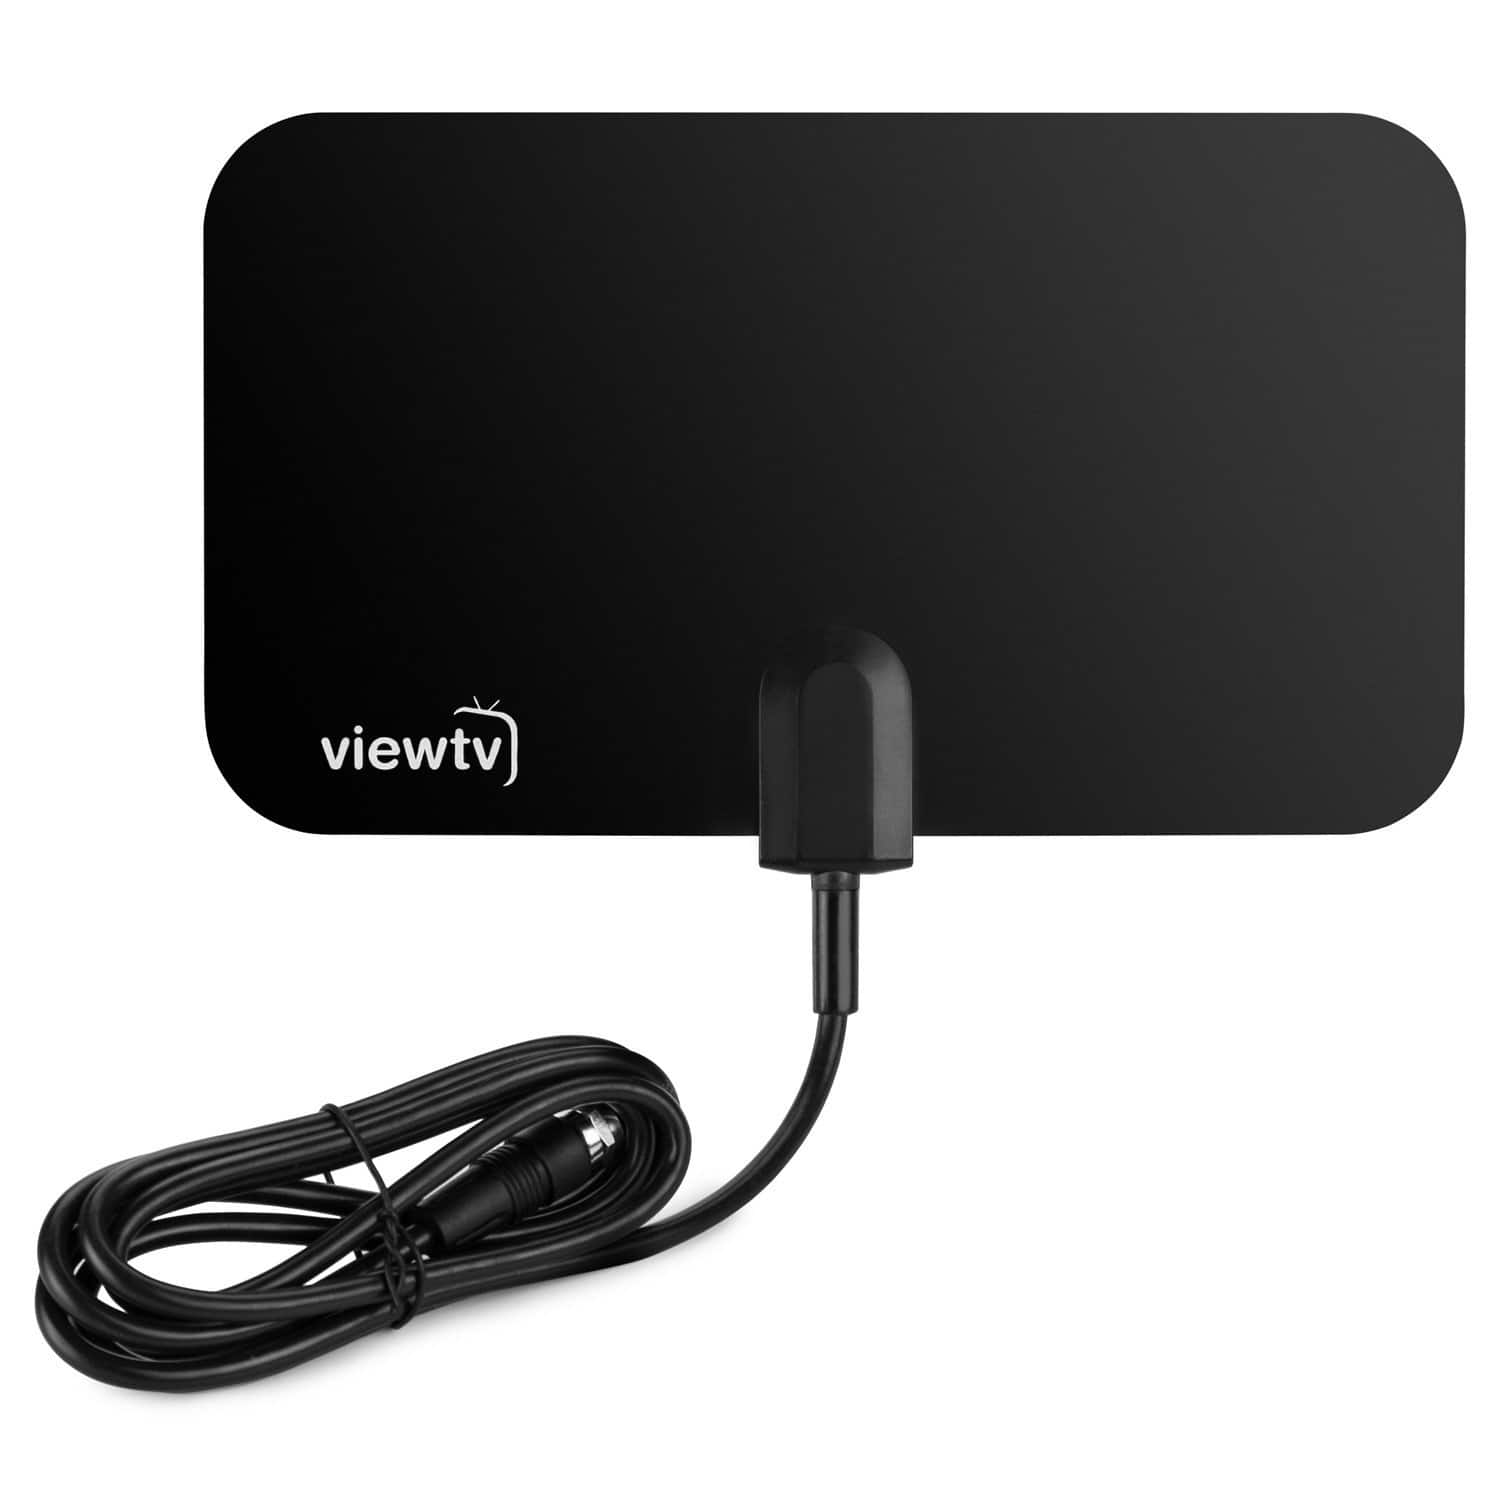 $4.99 - ViewTV Flat HD Digital Indoor TV Antenna - 25 Miles Range - Black